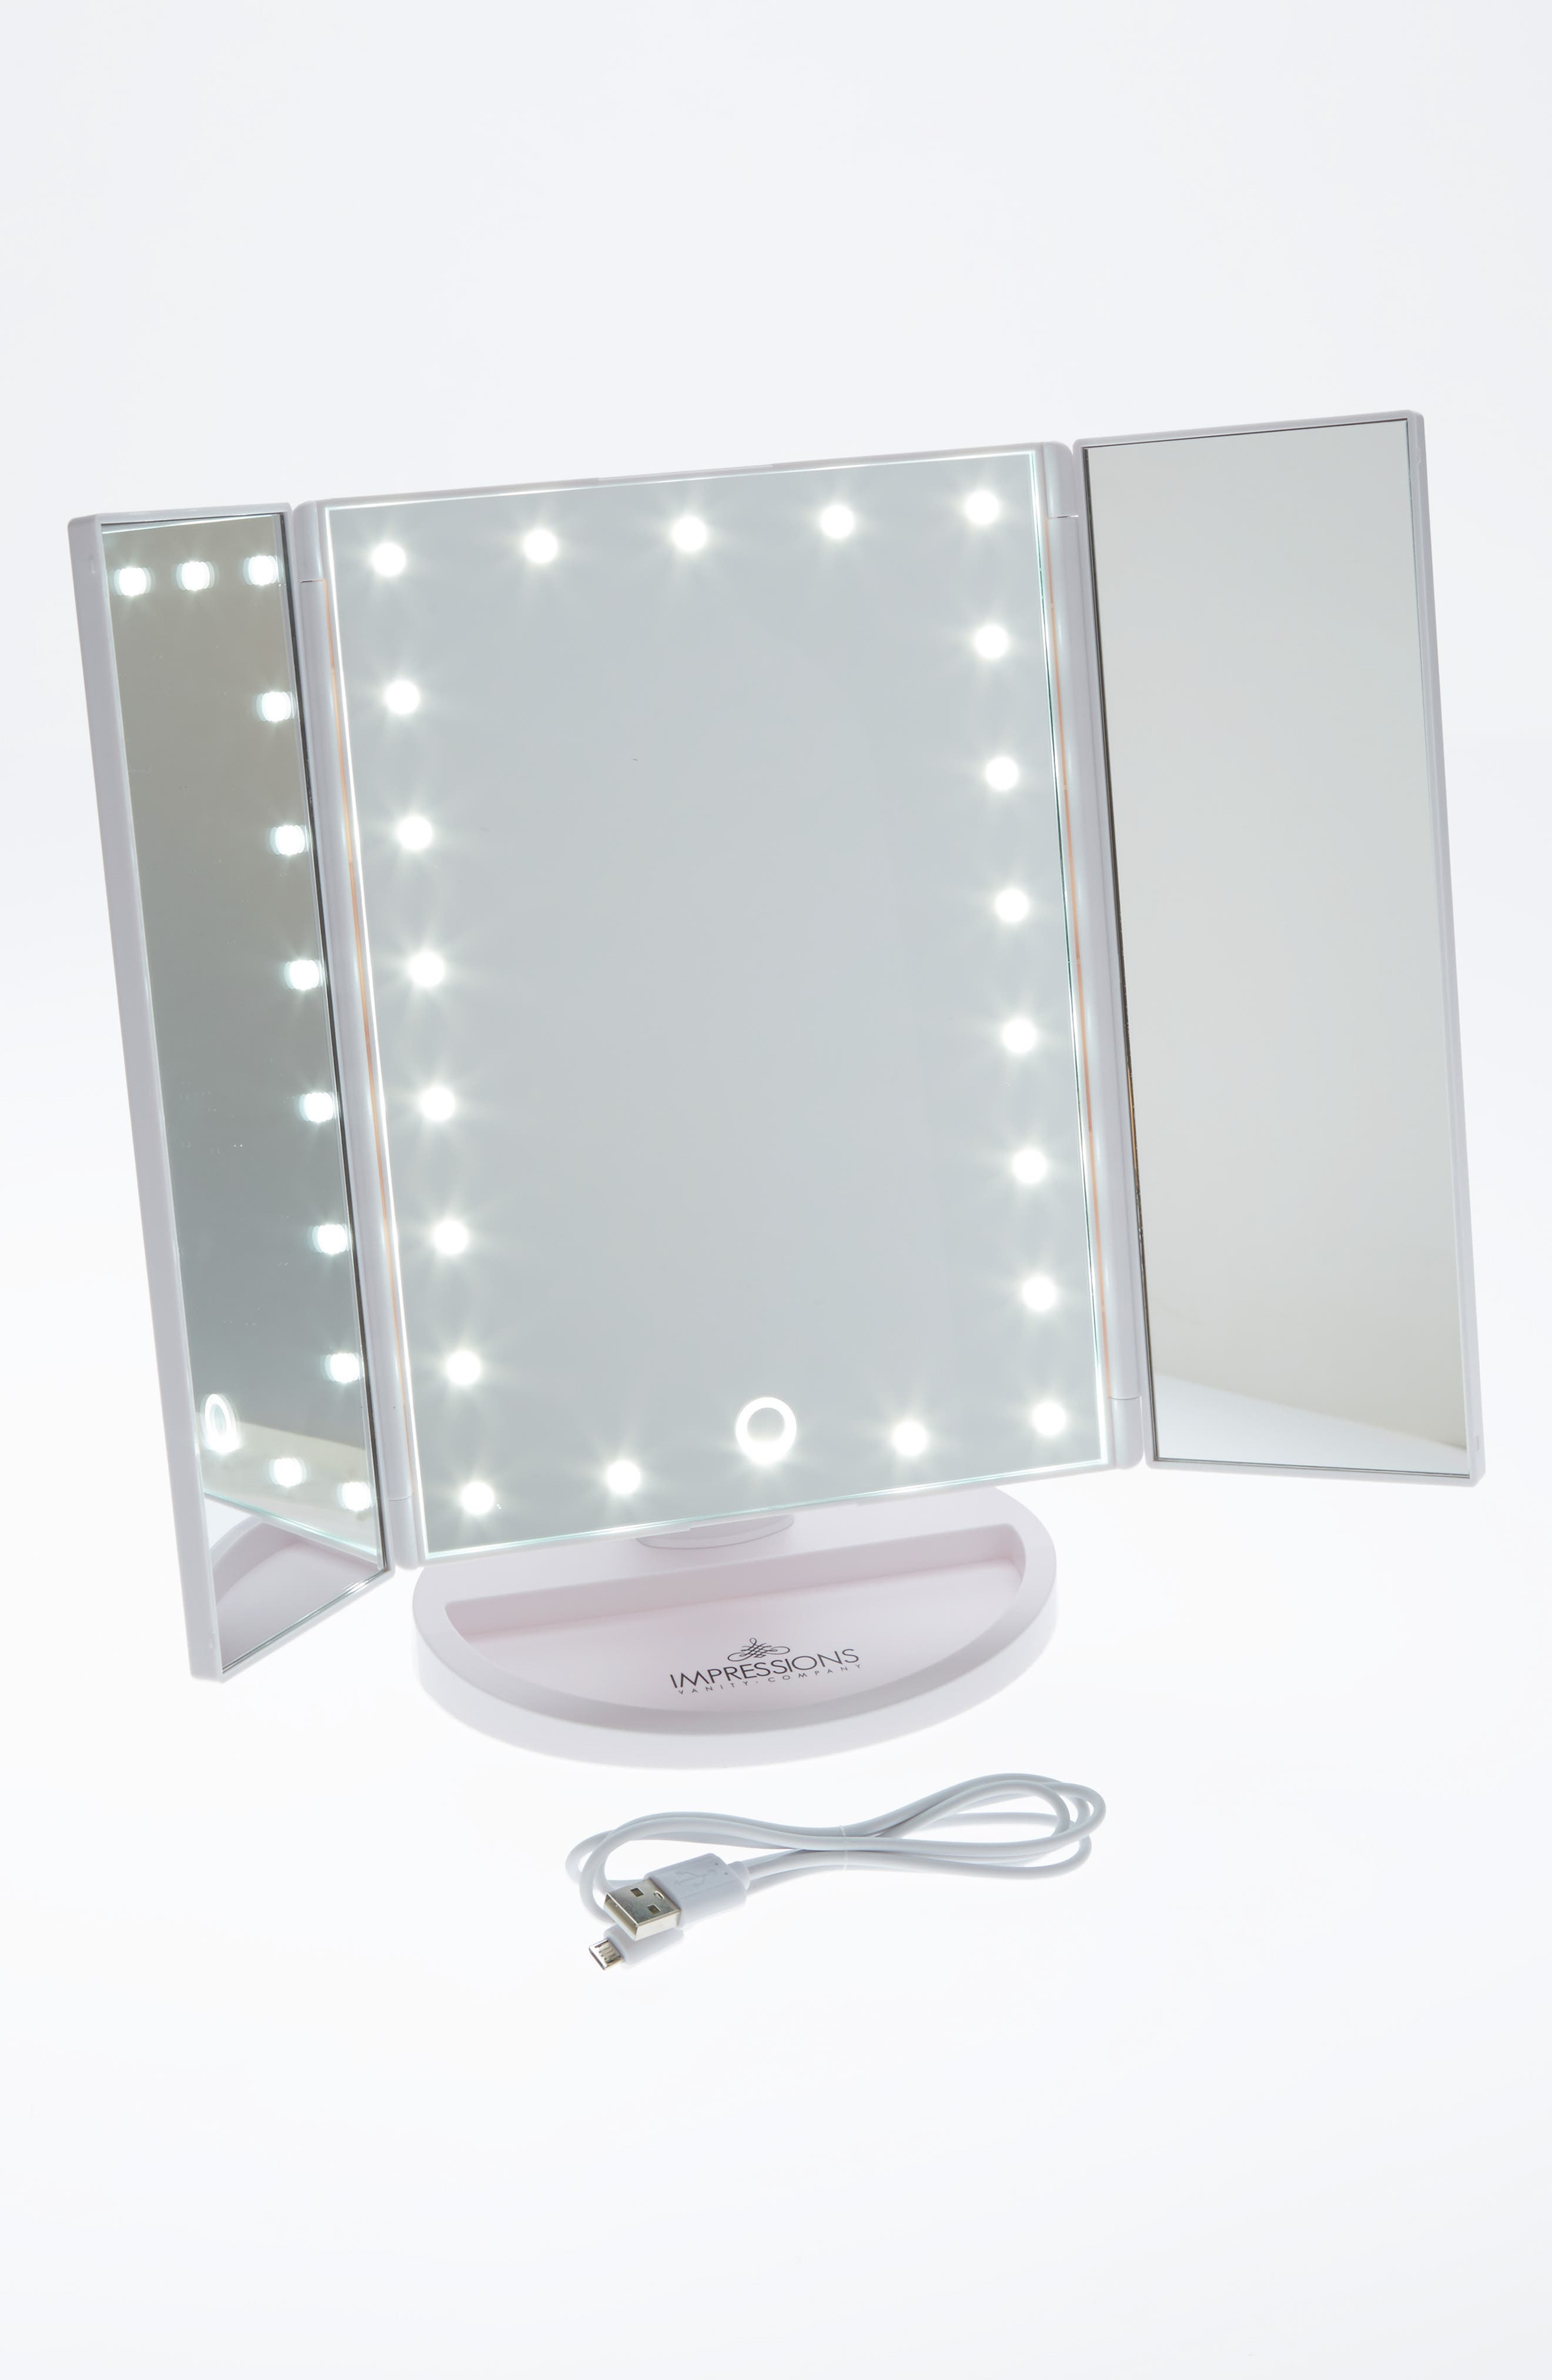 Main Image - Impressions Vanity Co. Touch 3.0 LED Trifold Makeup Mirror